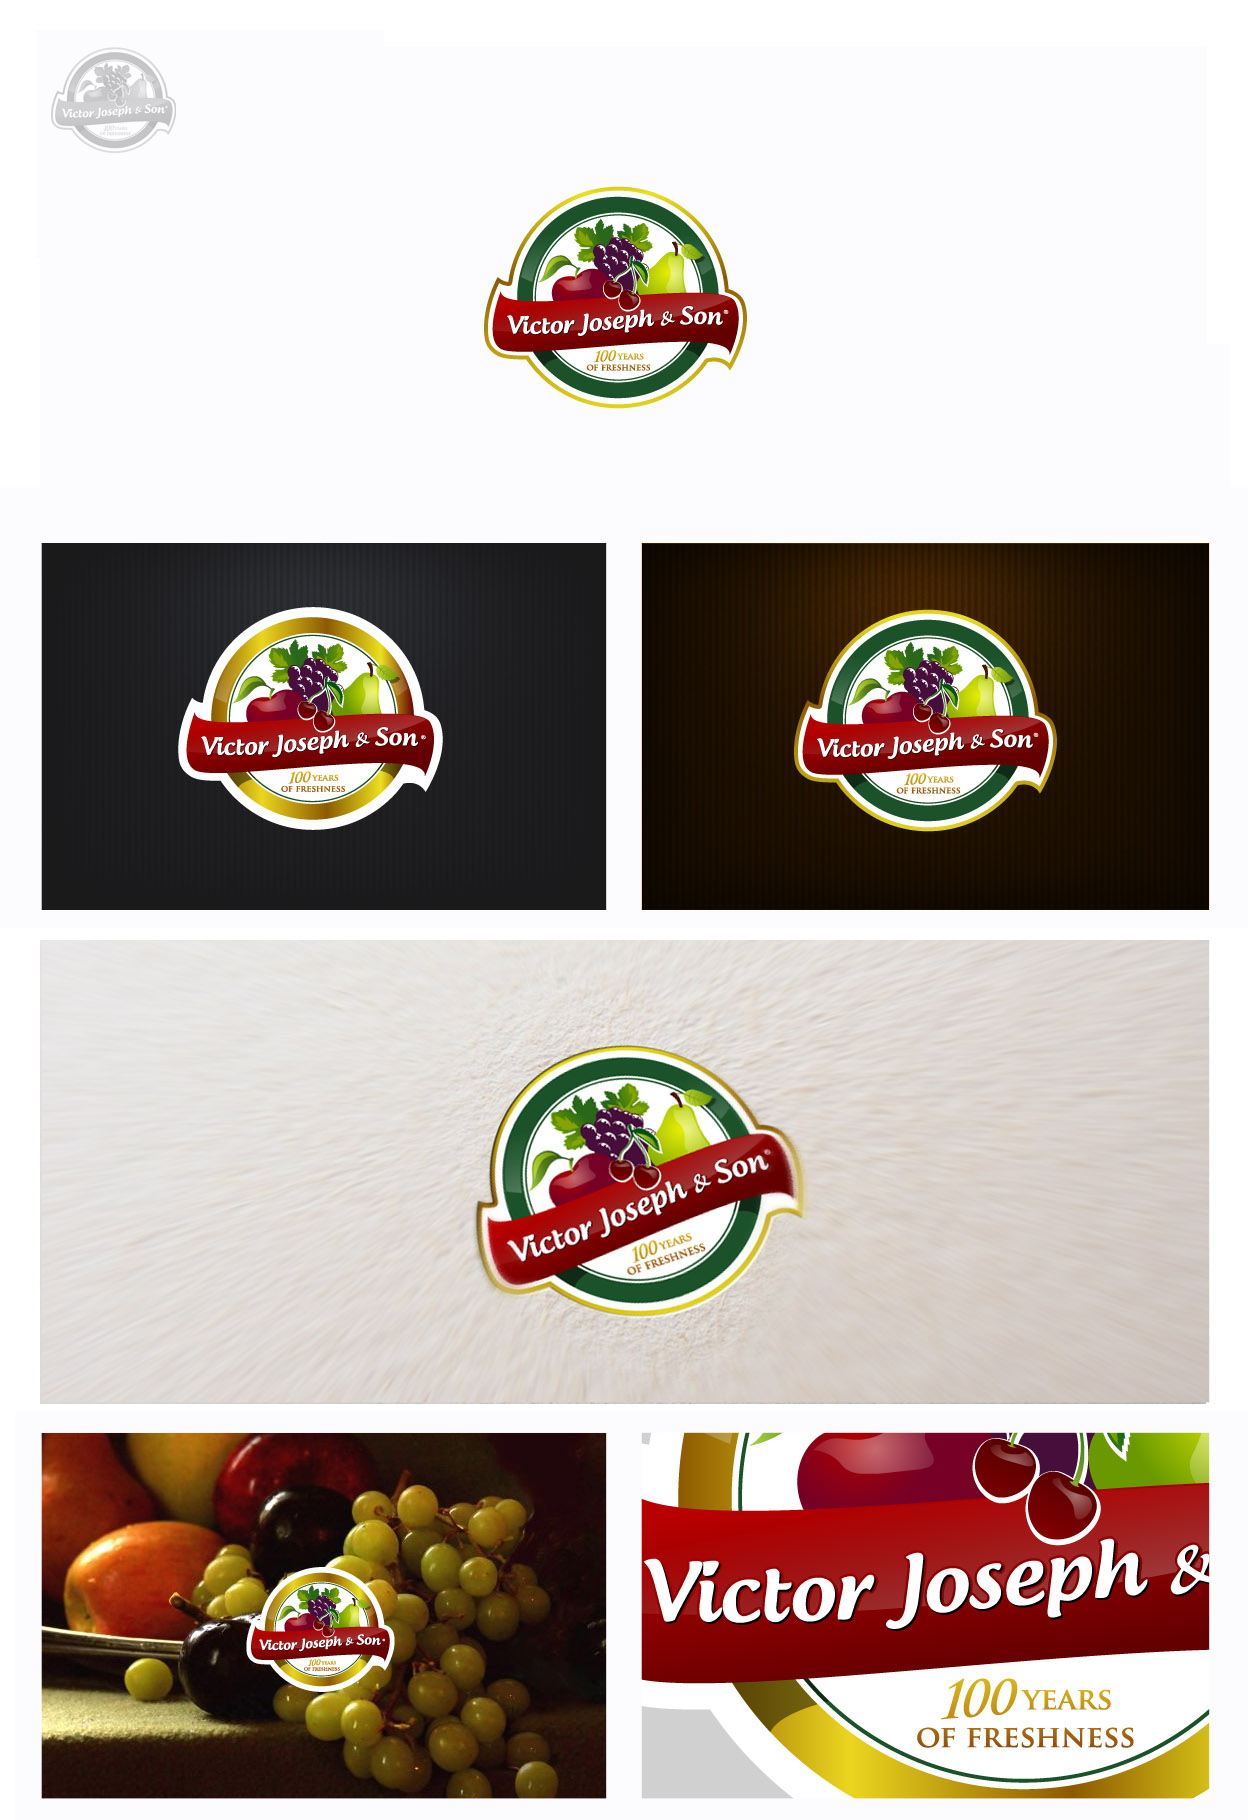 Logo Design by jpbituin - Entry No. 116 in the Logo Design Contest Imaginative Logo Design for Victor Joseph & Son, Inc..